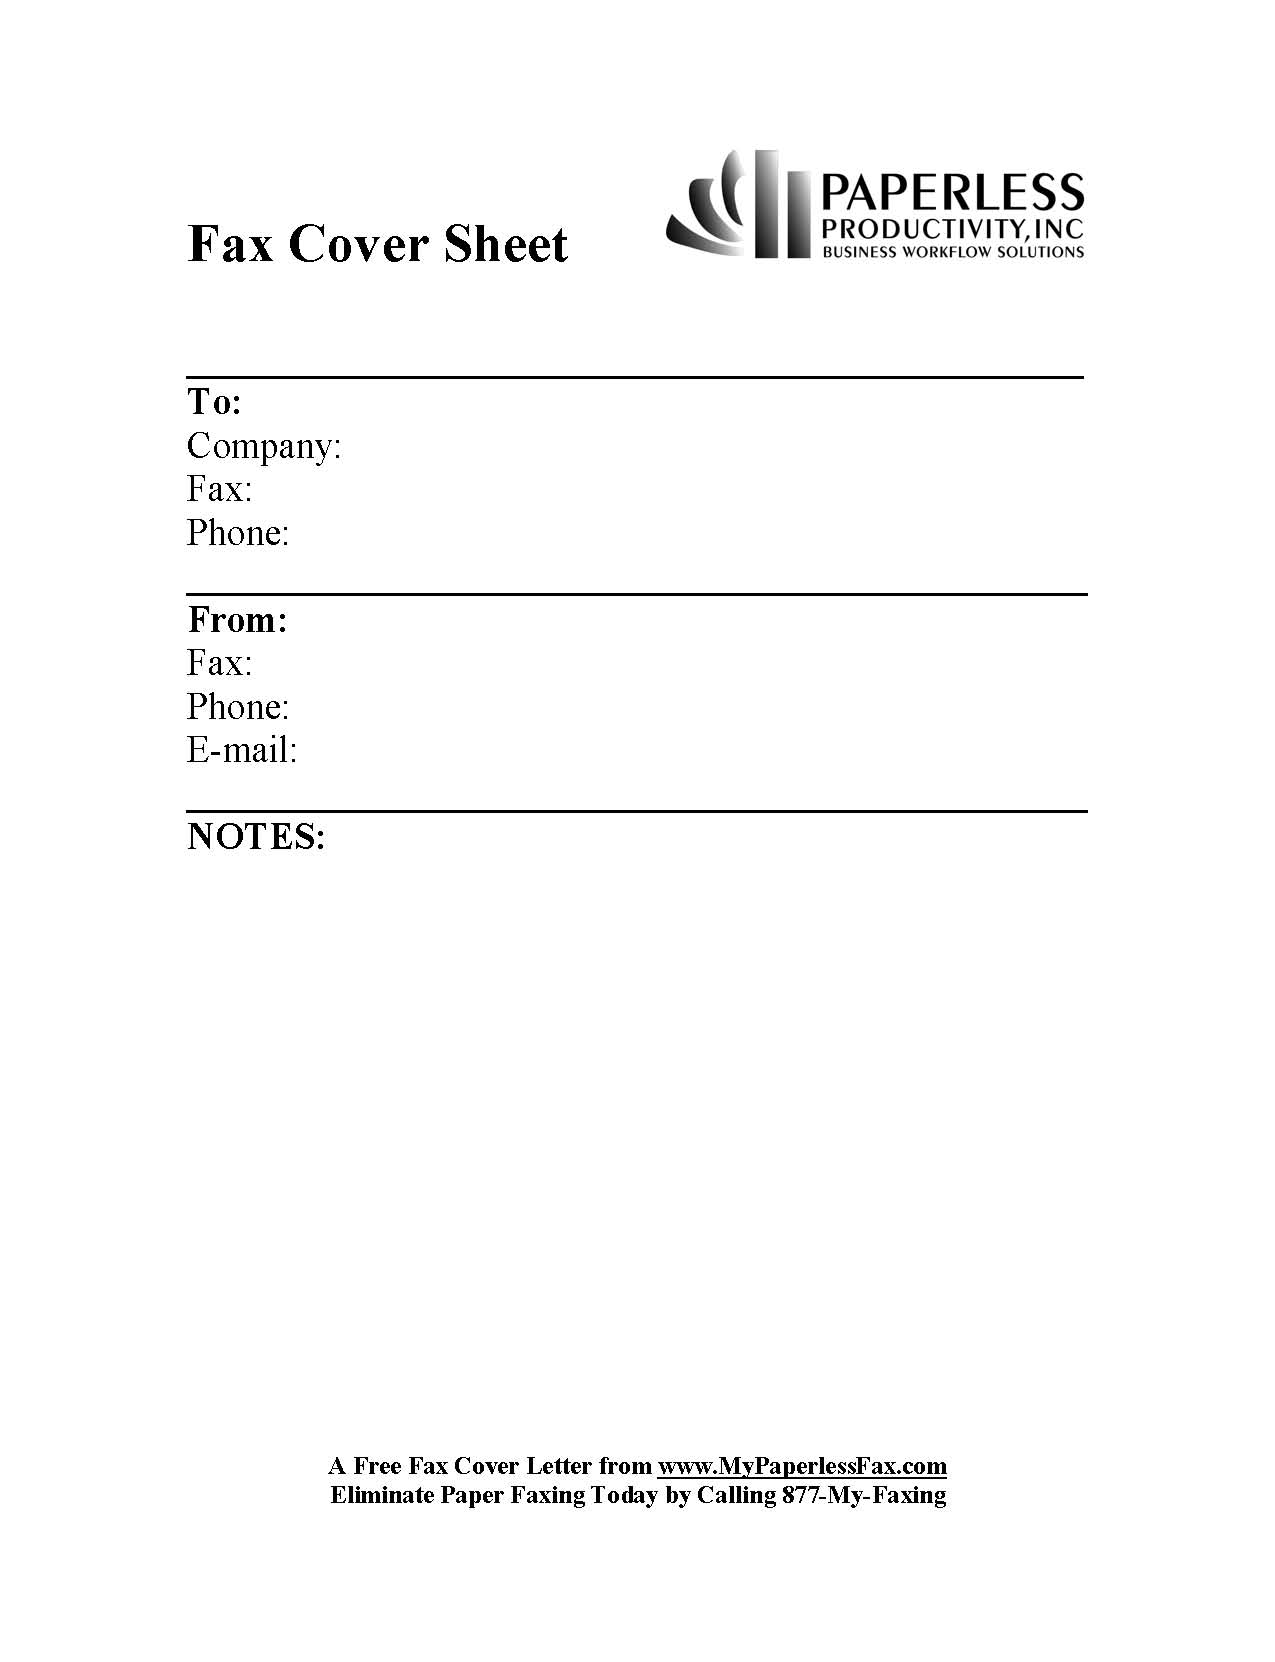 Sample Of Fax Cover Sheet – Blank Fax Cover Sheet Template